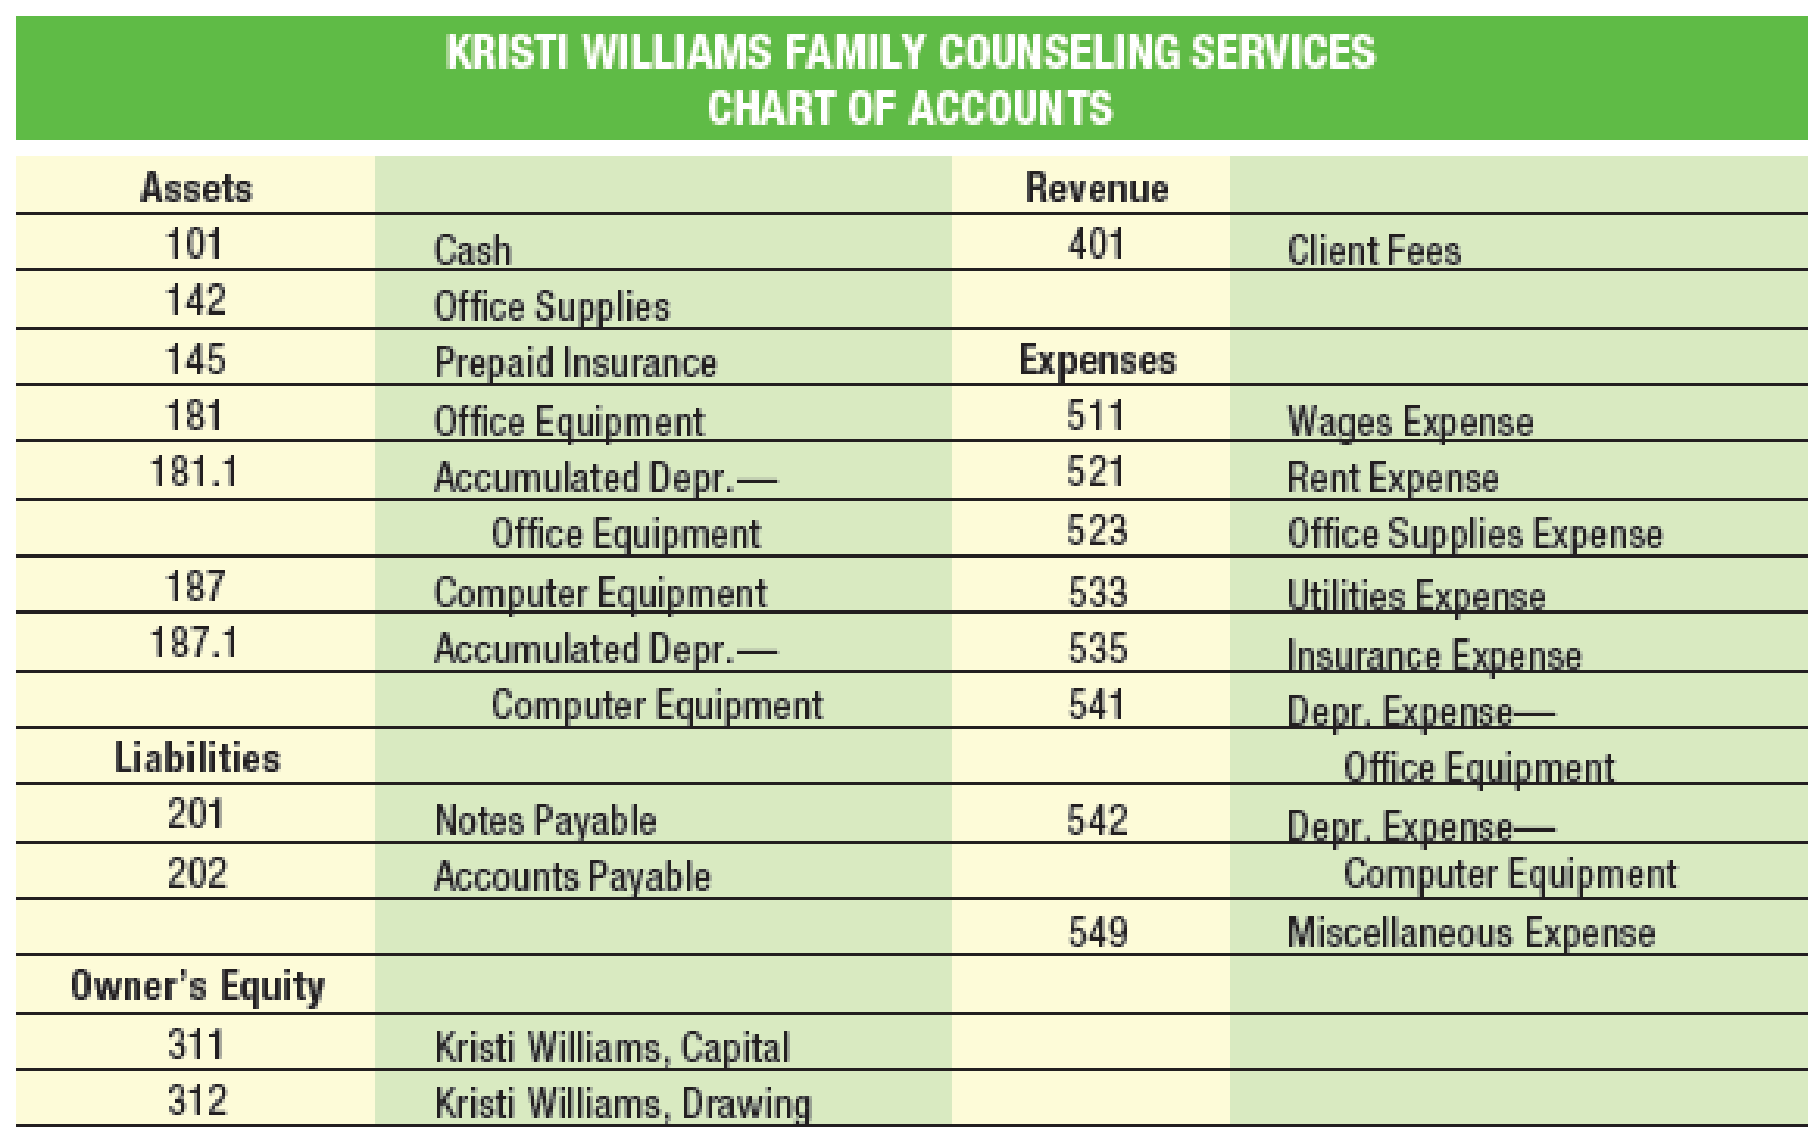 Chapter 5, Problem 1MP, Kristi Williams offers family counseling services specializing in financial and marital problems. A , example  1